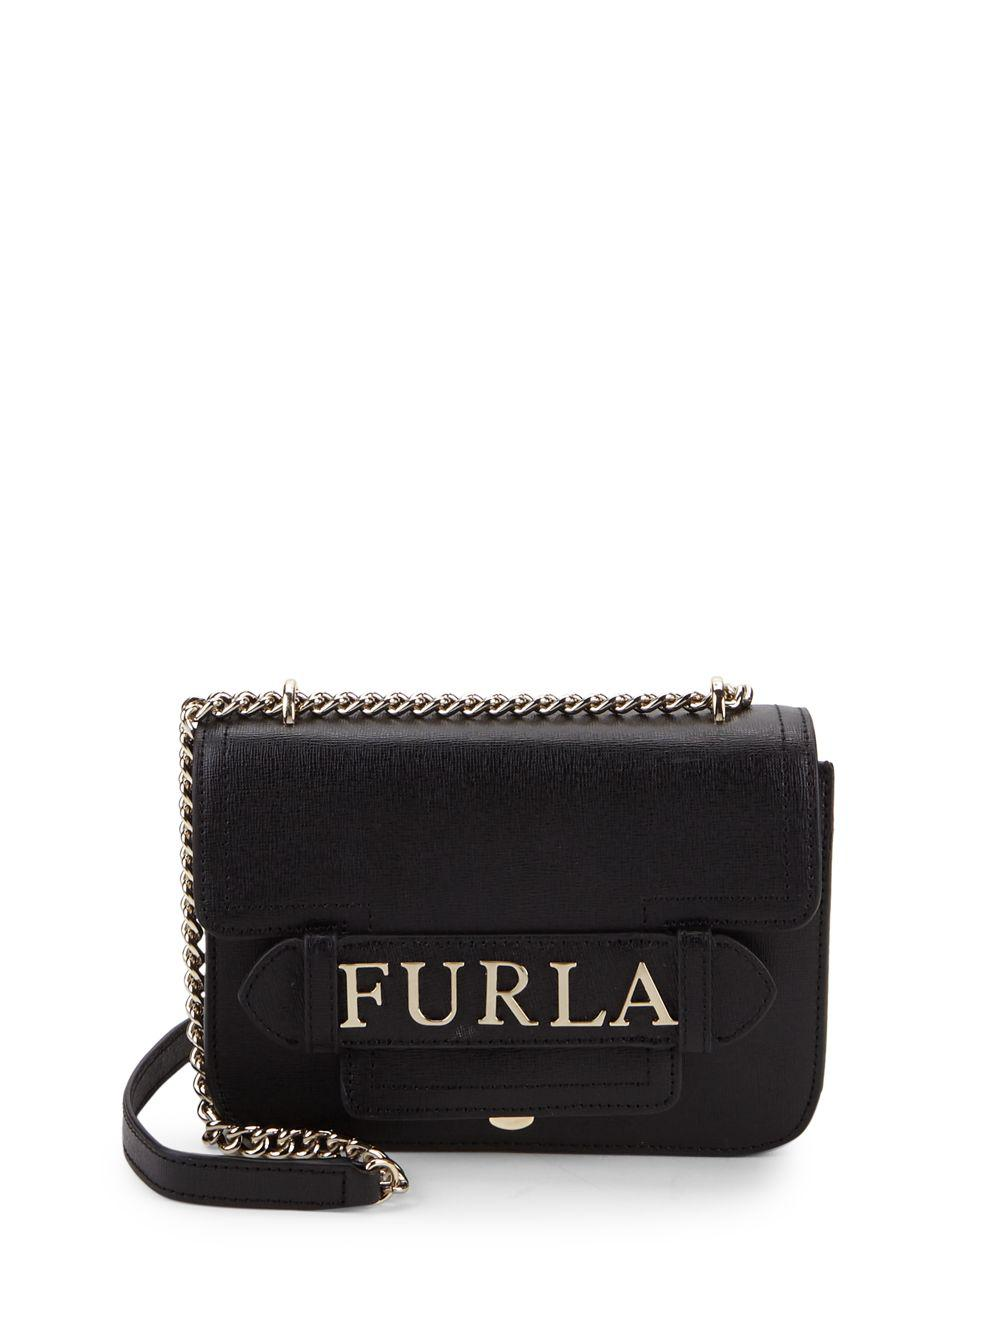 Furla - Black Carol Leather Mini Crossbody Bag - Lyst. View fullscreen ef6a8a72b193a